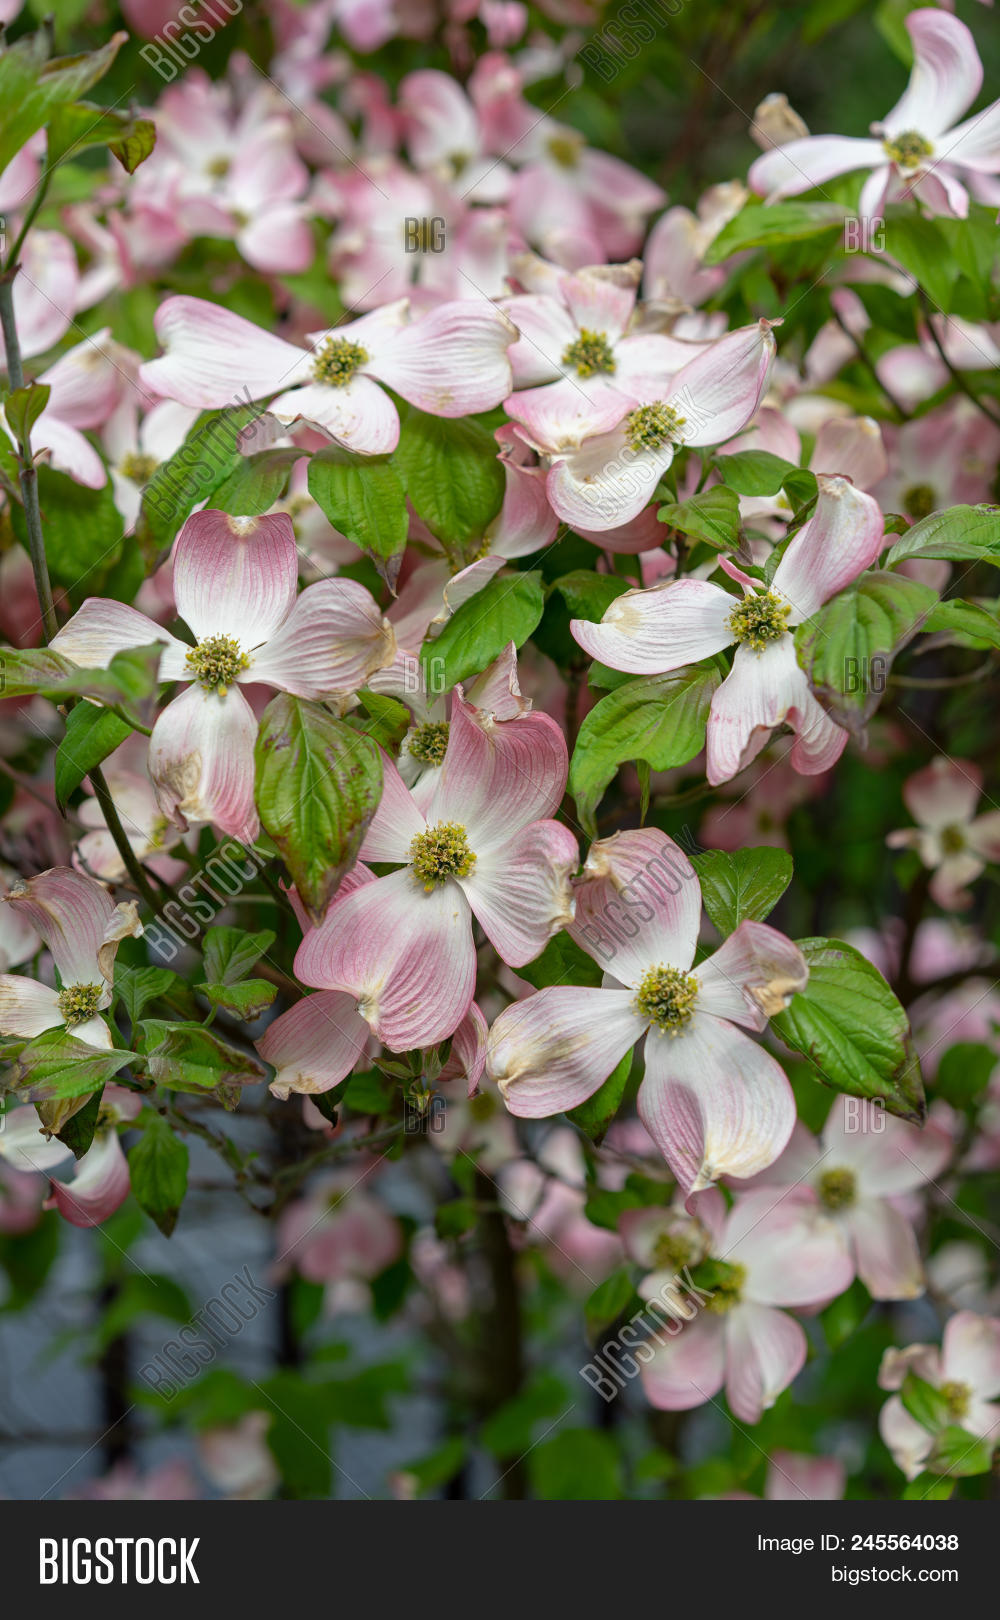 A Close Up View Of Pink Dogwood Flowers Cornus Florida Rubra